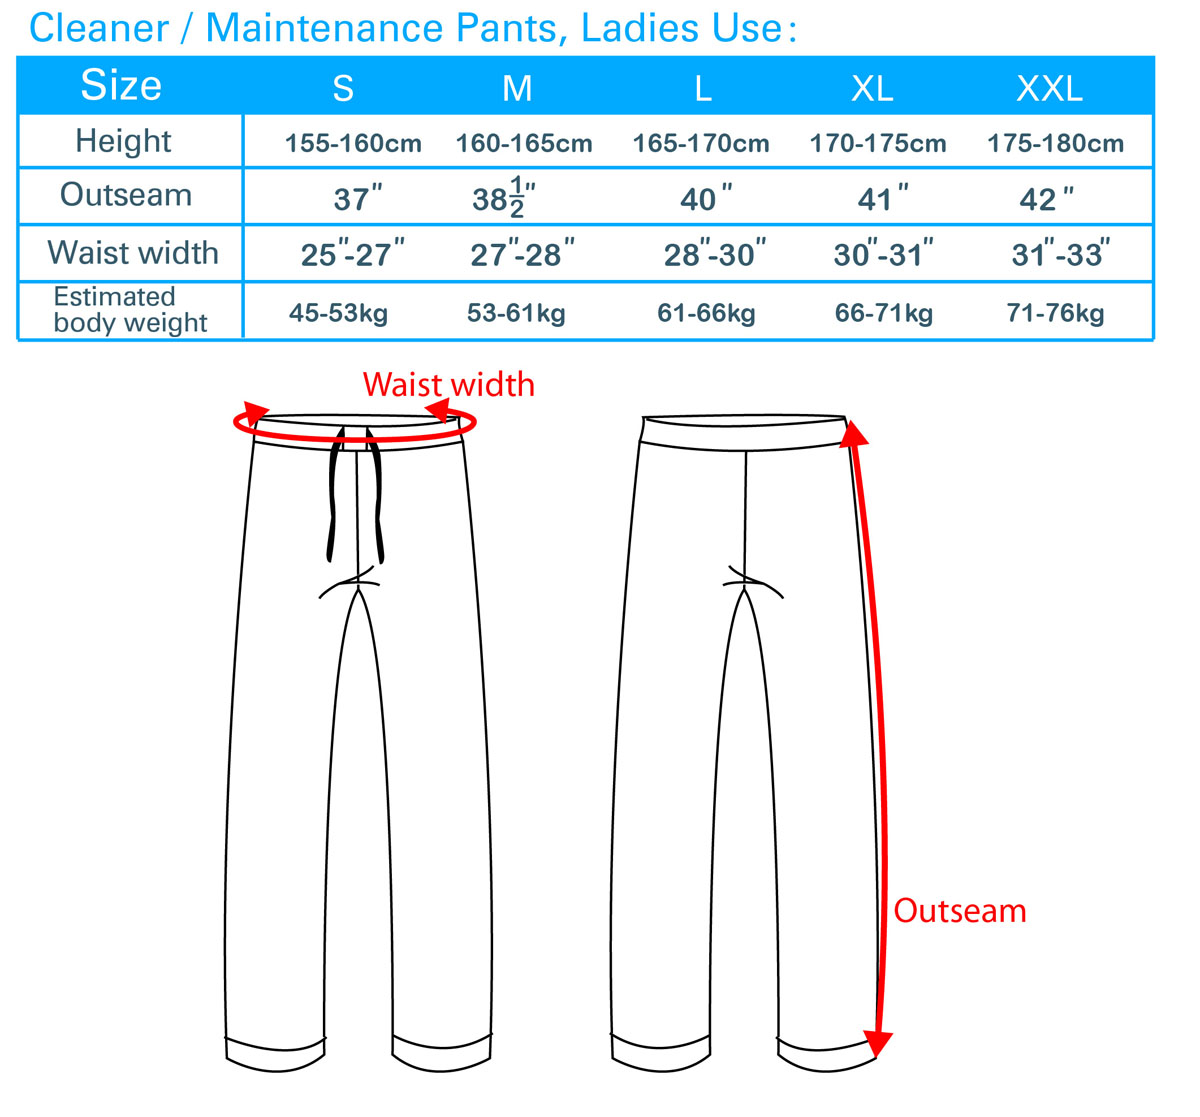 Cleaner/Maintenance ,Pants Ladies Use